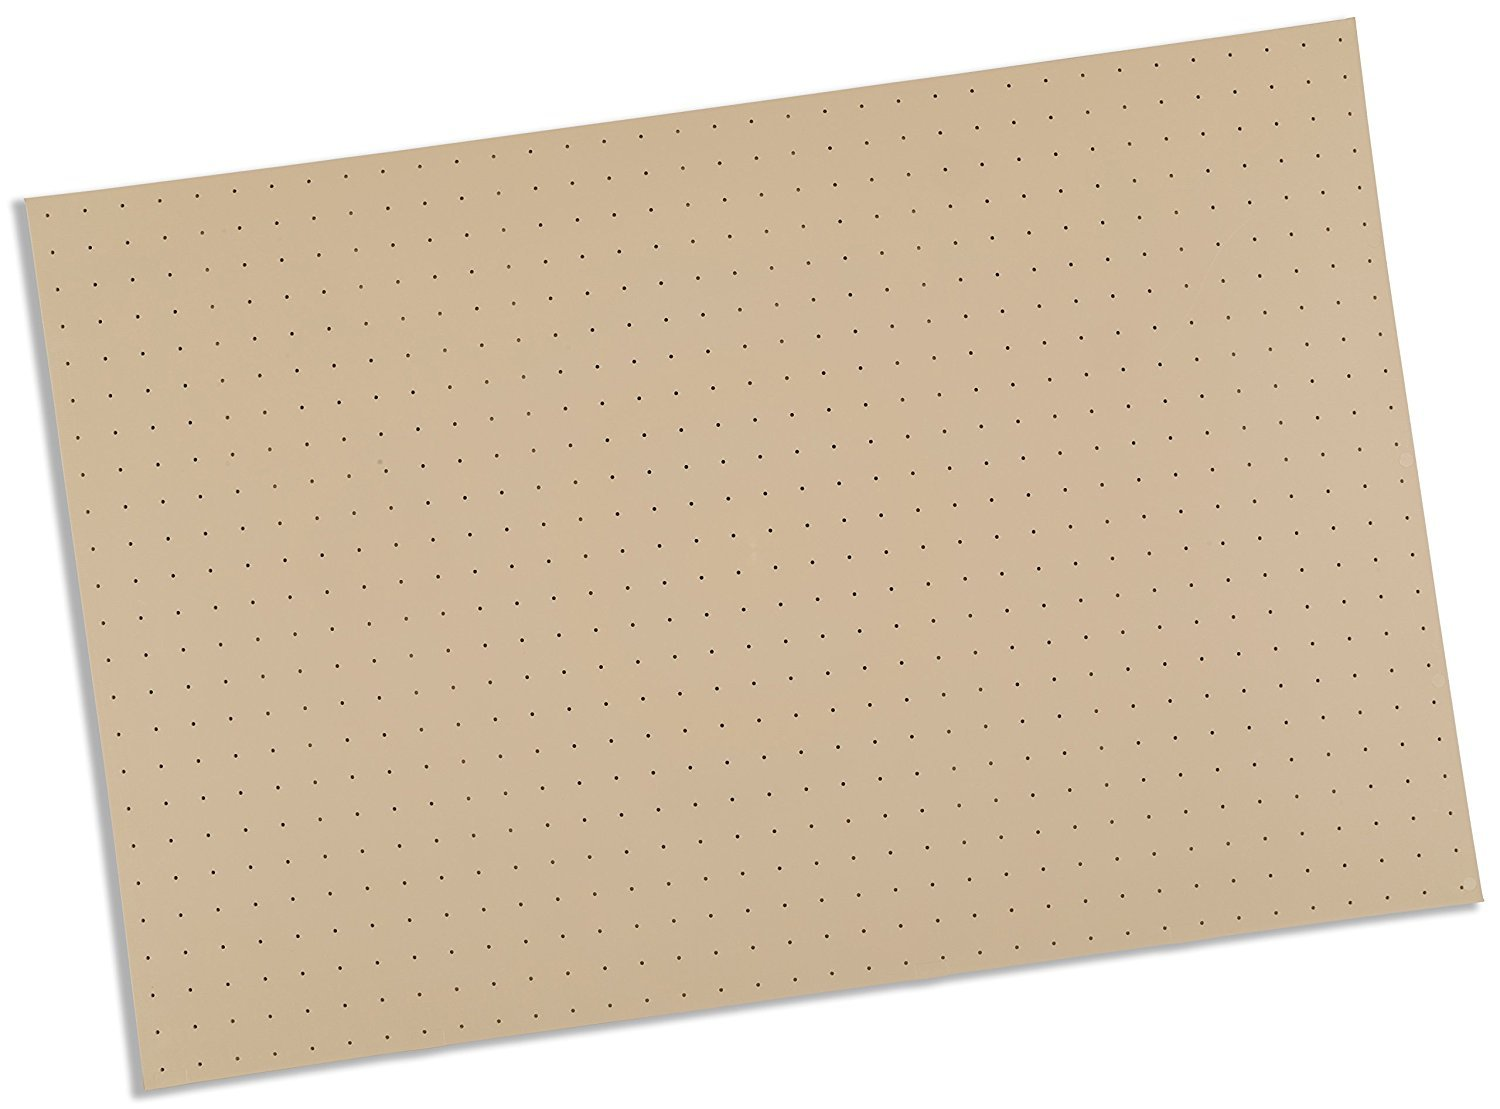 Rolyan Splinting Material Sheet, Ezeform, Beige, 1/8'' x 18'' x 24'', 1% Perforated, Single Sheet